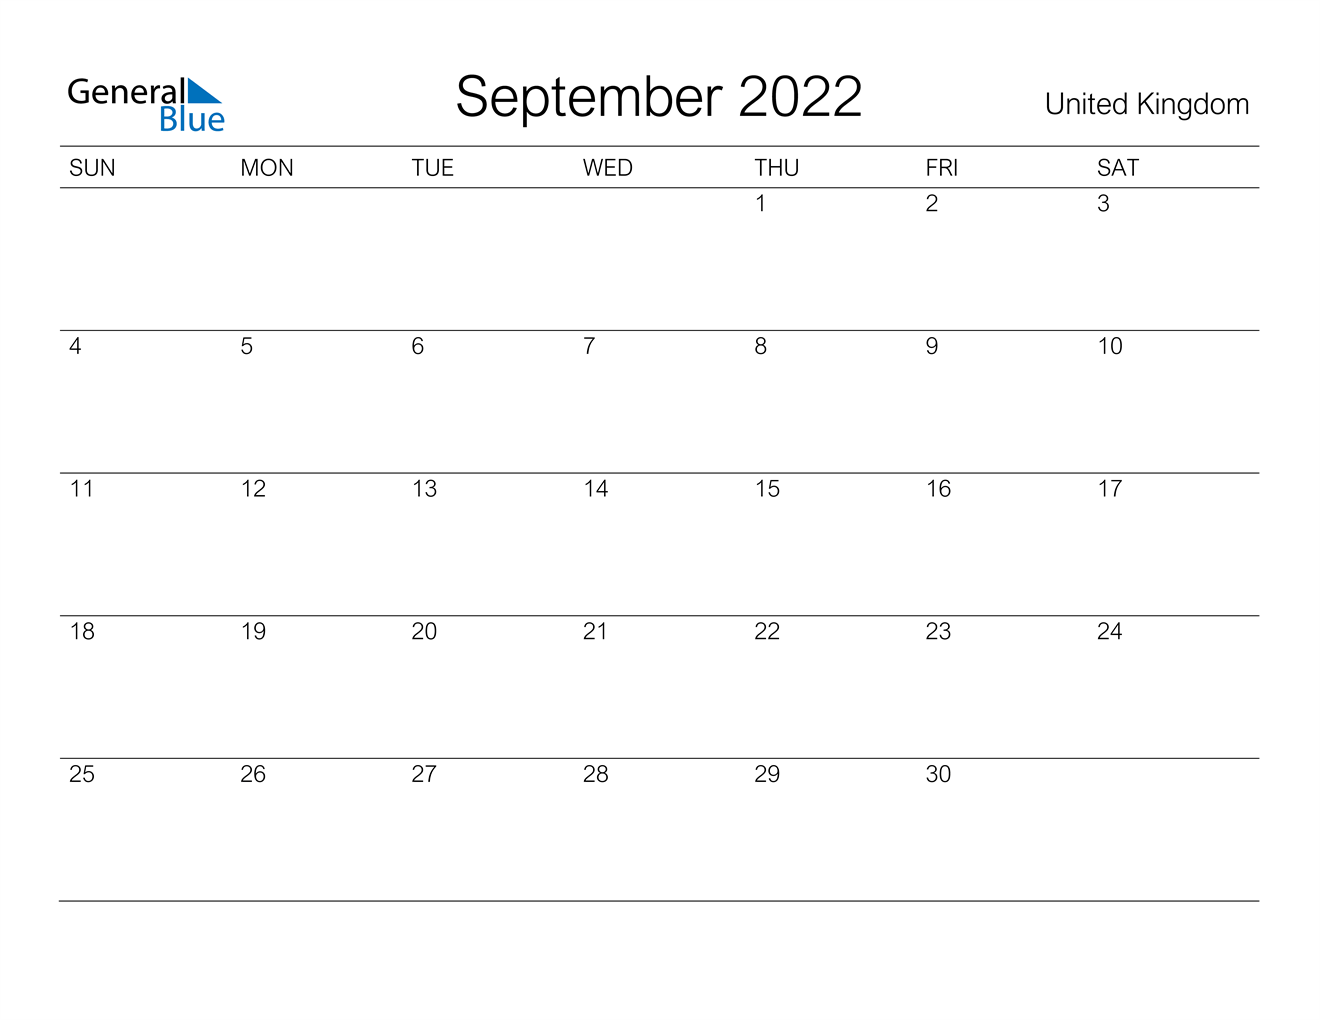 Remembering to pay your bills each month isn't always easy, especially when your bills are d. September 2022 Calendar - United Kingdom